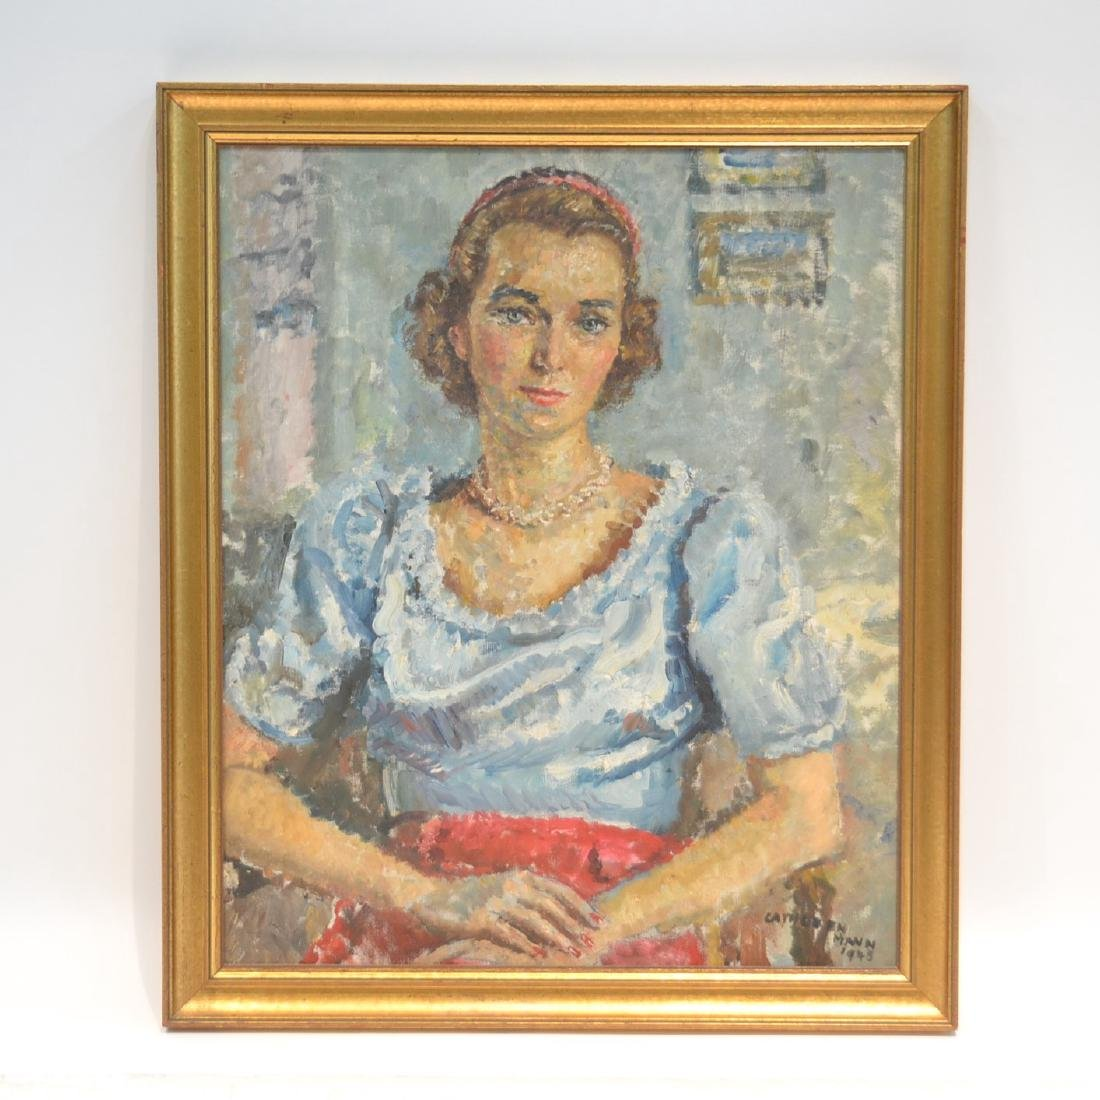 OIL ON CANVAS PORTRAIT OF WOMAN SIGNED